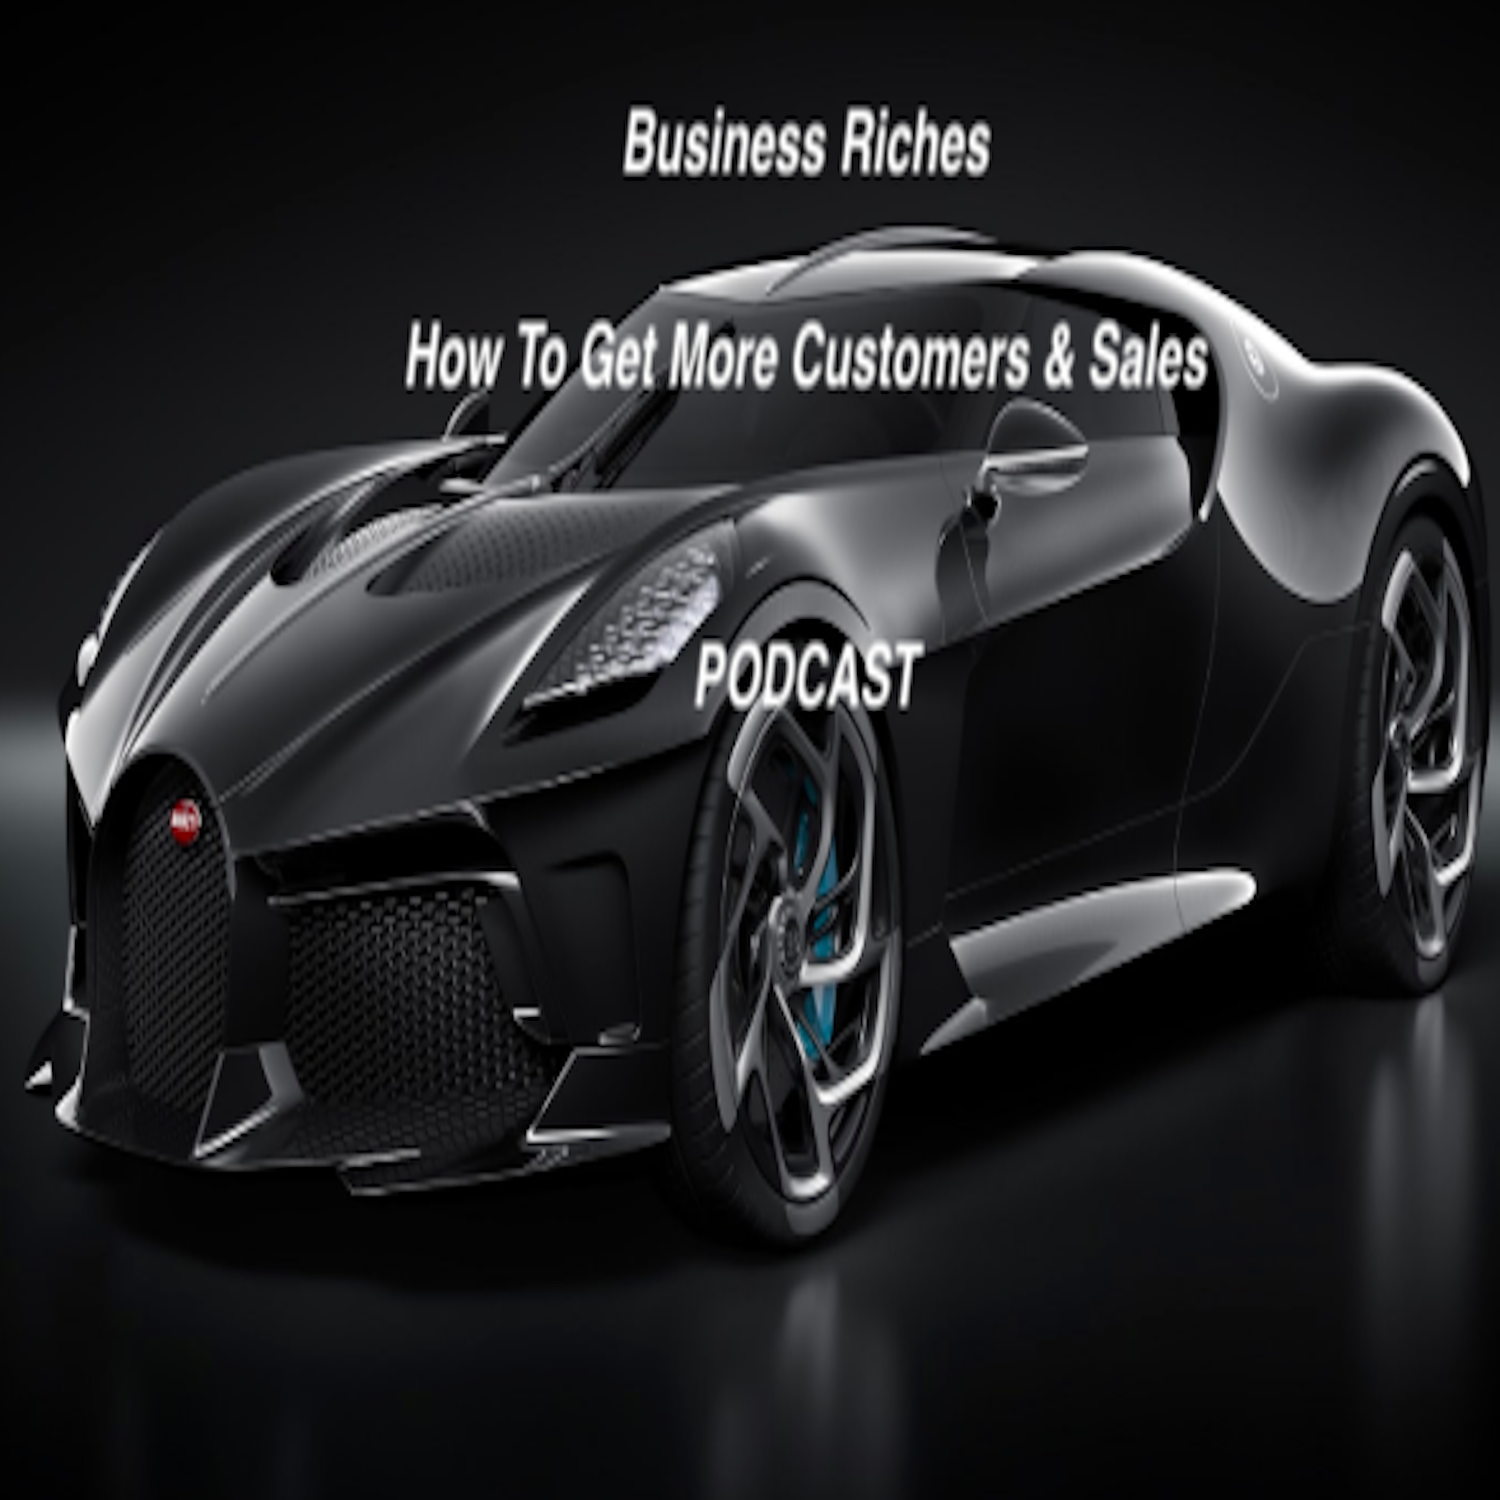 How To Get More Customers & Sales - Episode 38